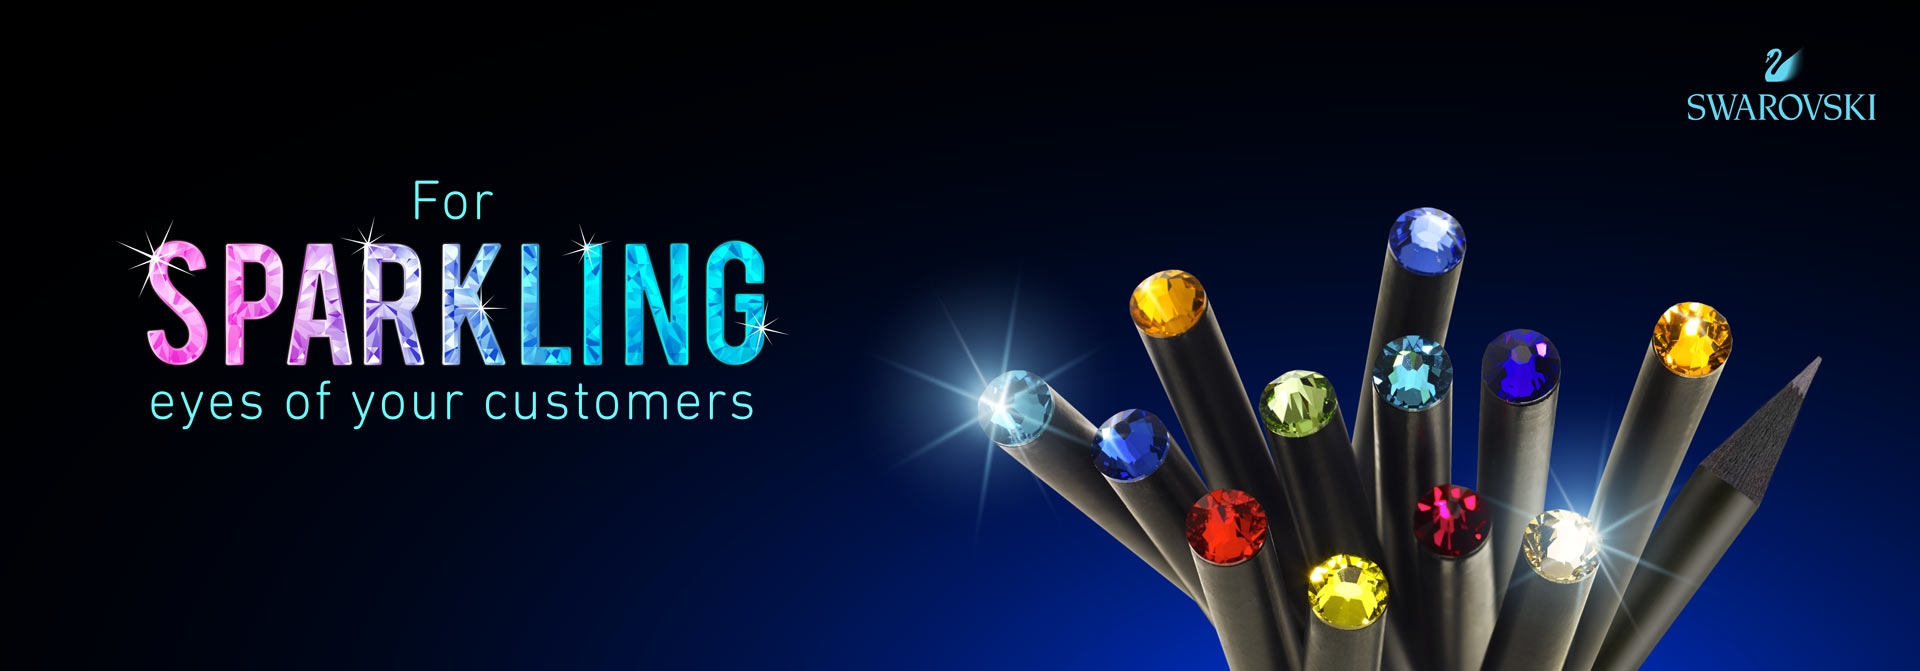 For sparkling eyes of your customers: pencils with glittering crystals from Swarovski®